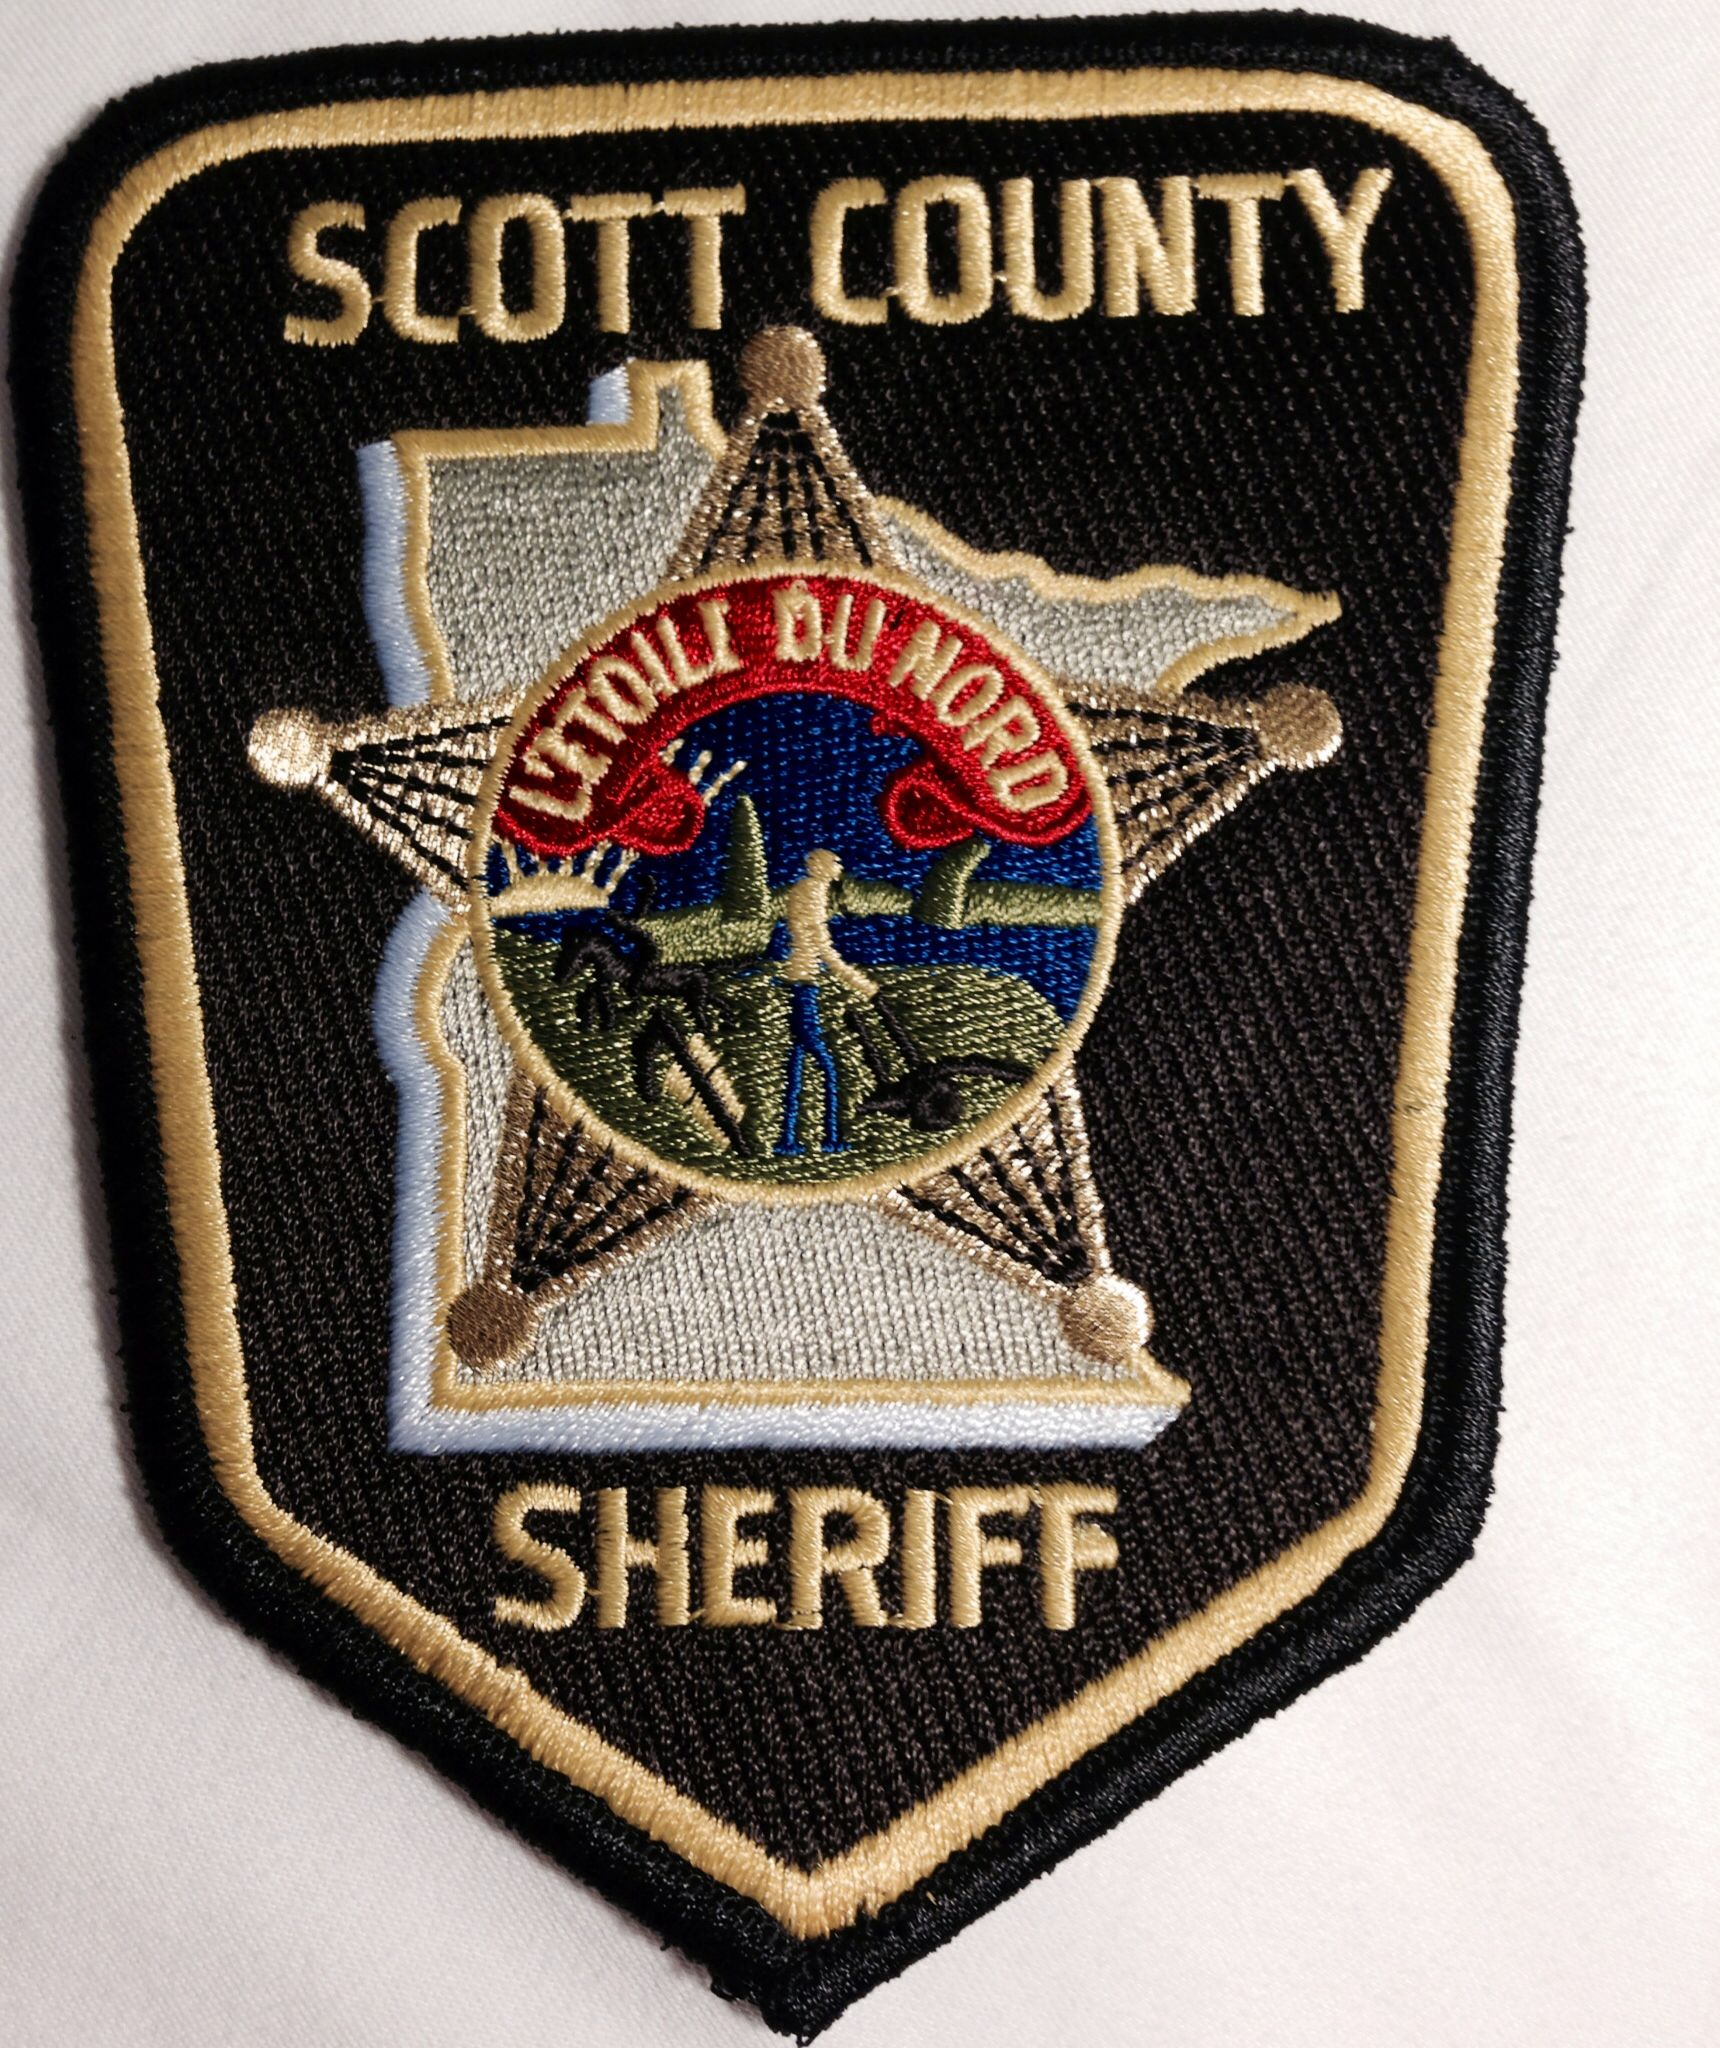 Scott County Sheriffs Office Police Patches Police Badge Police